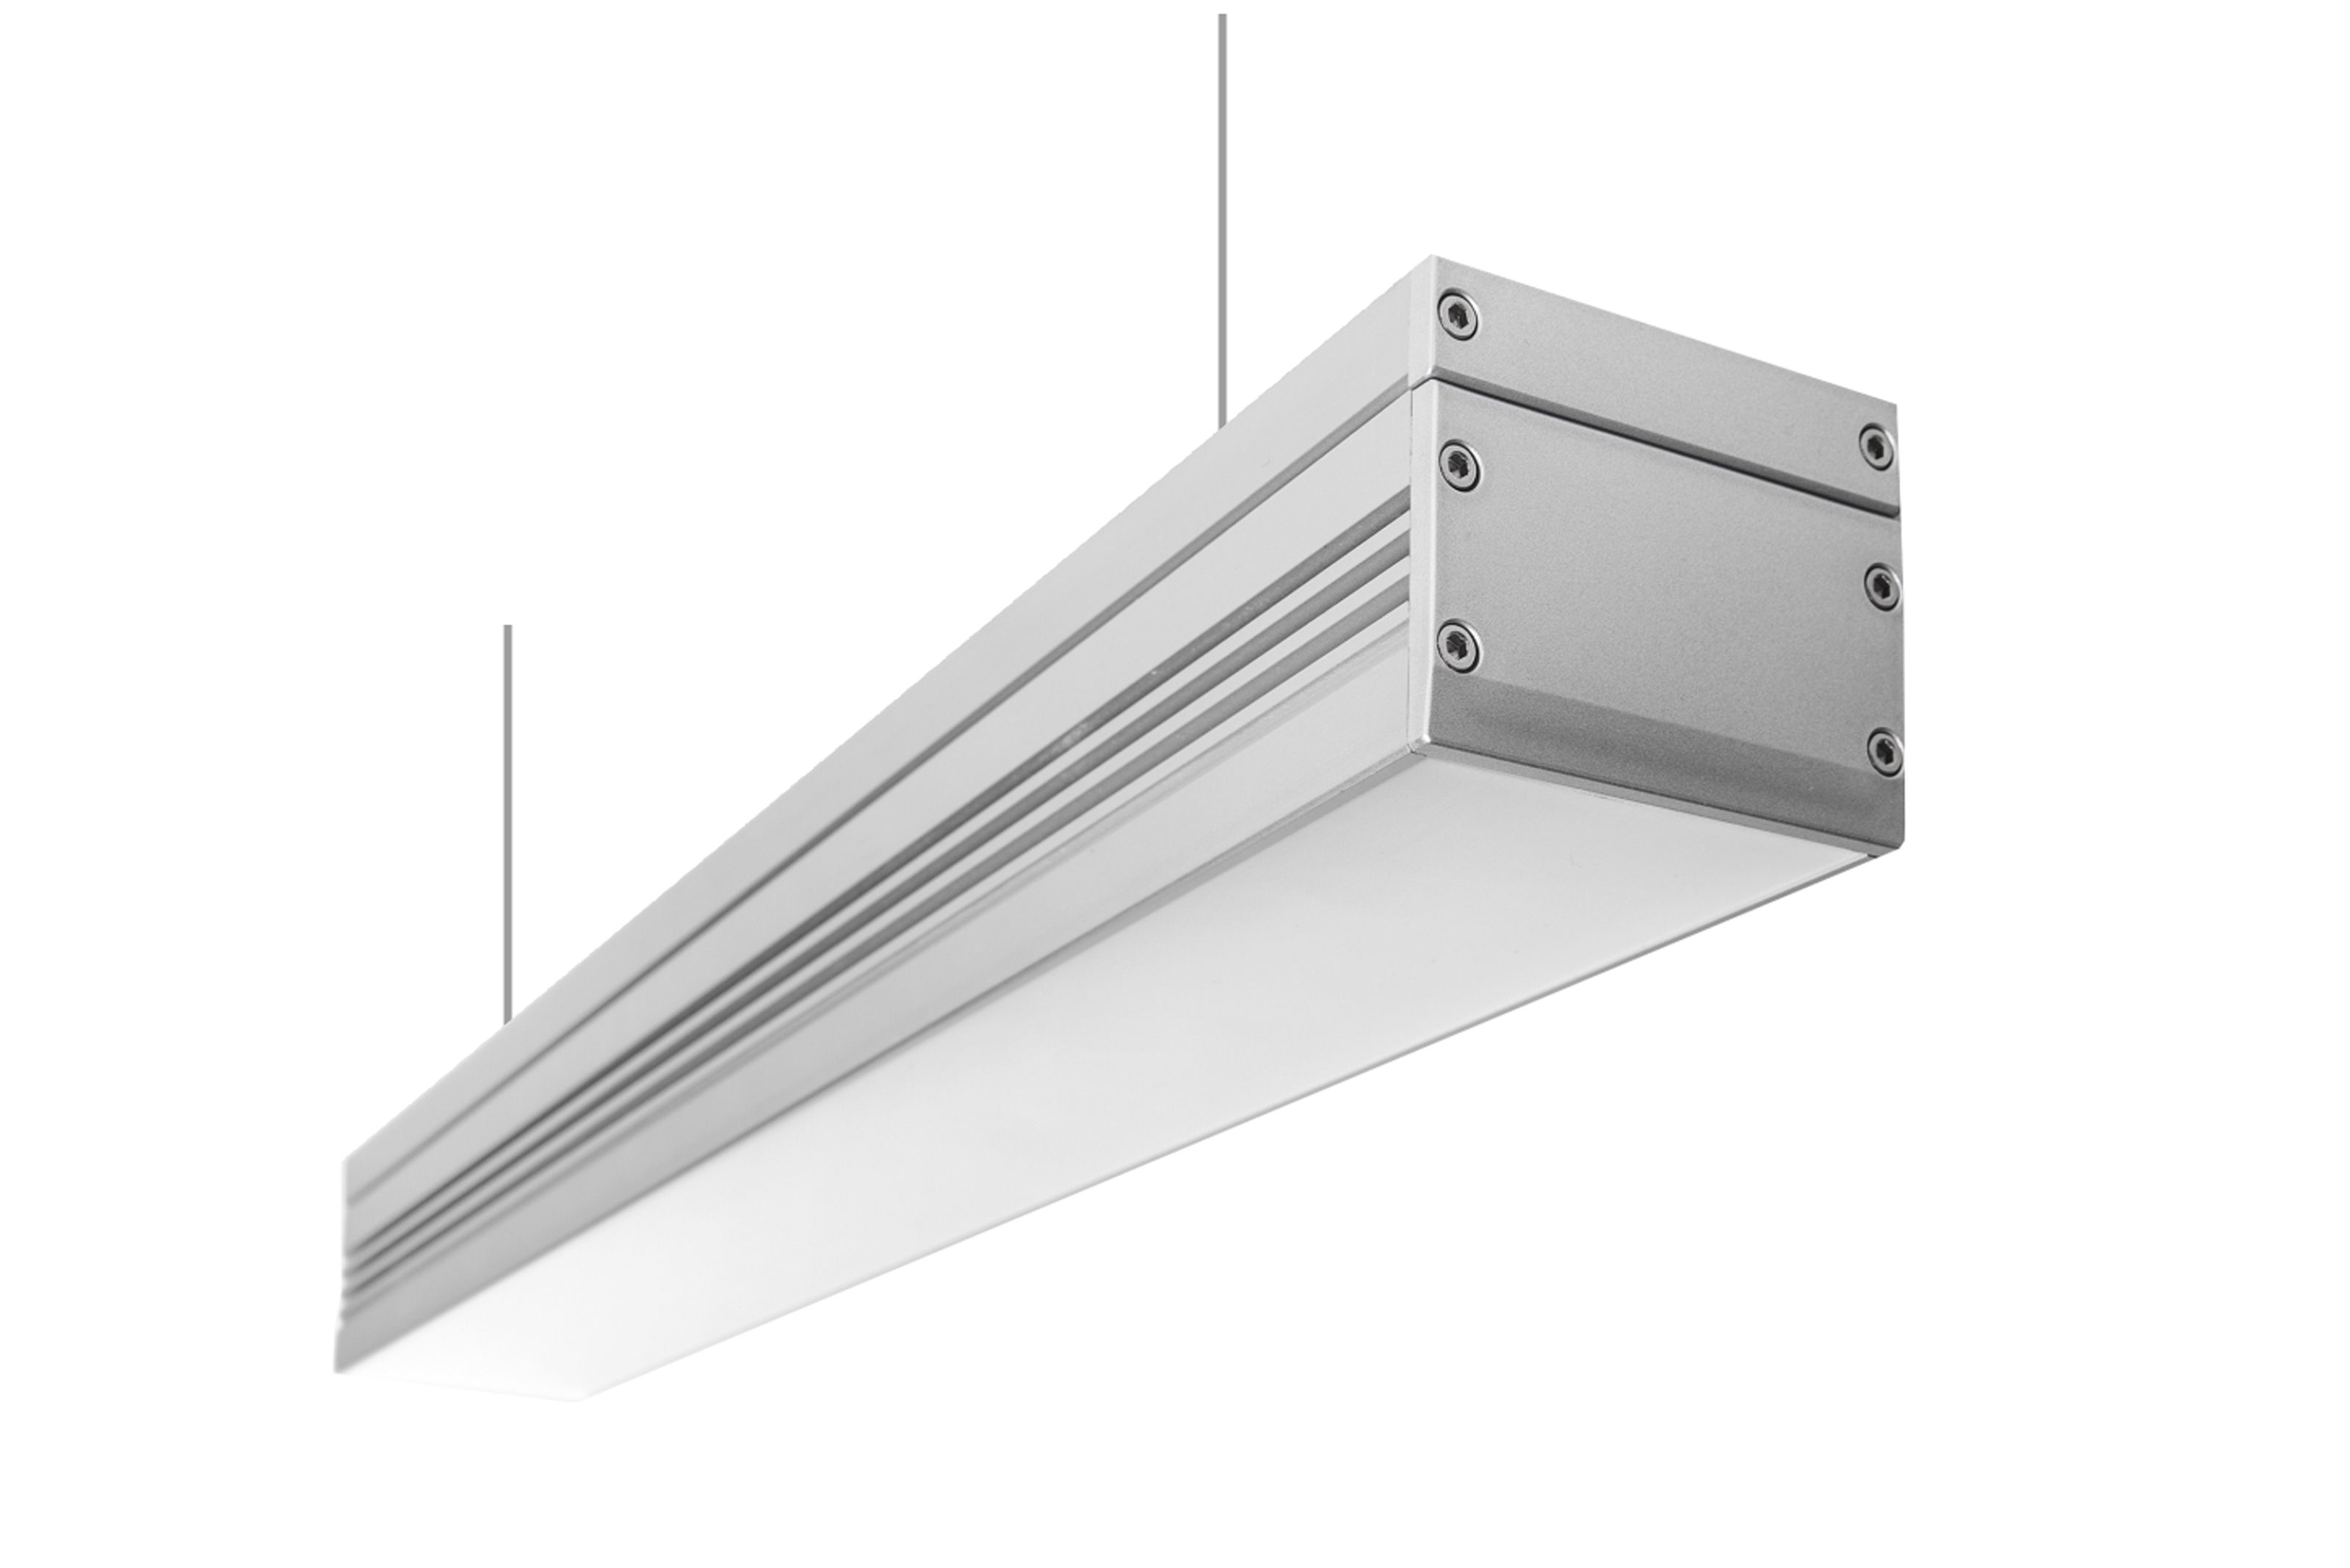 lightline-rico-s-2-mj-lighting-v2